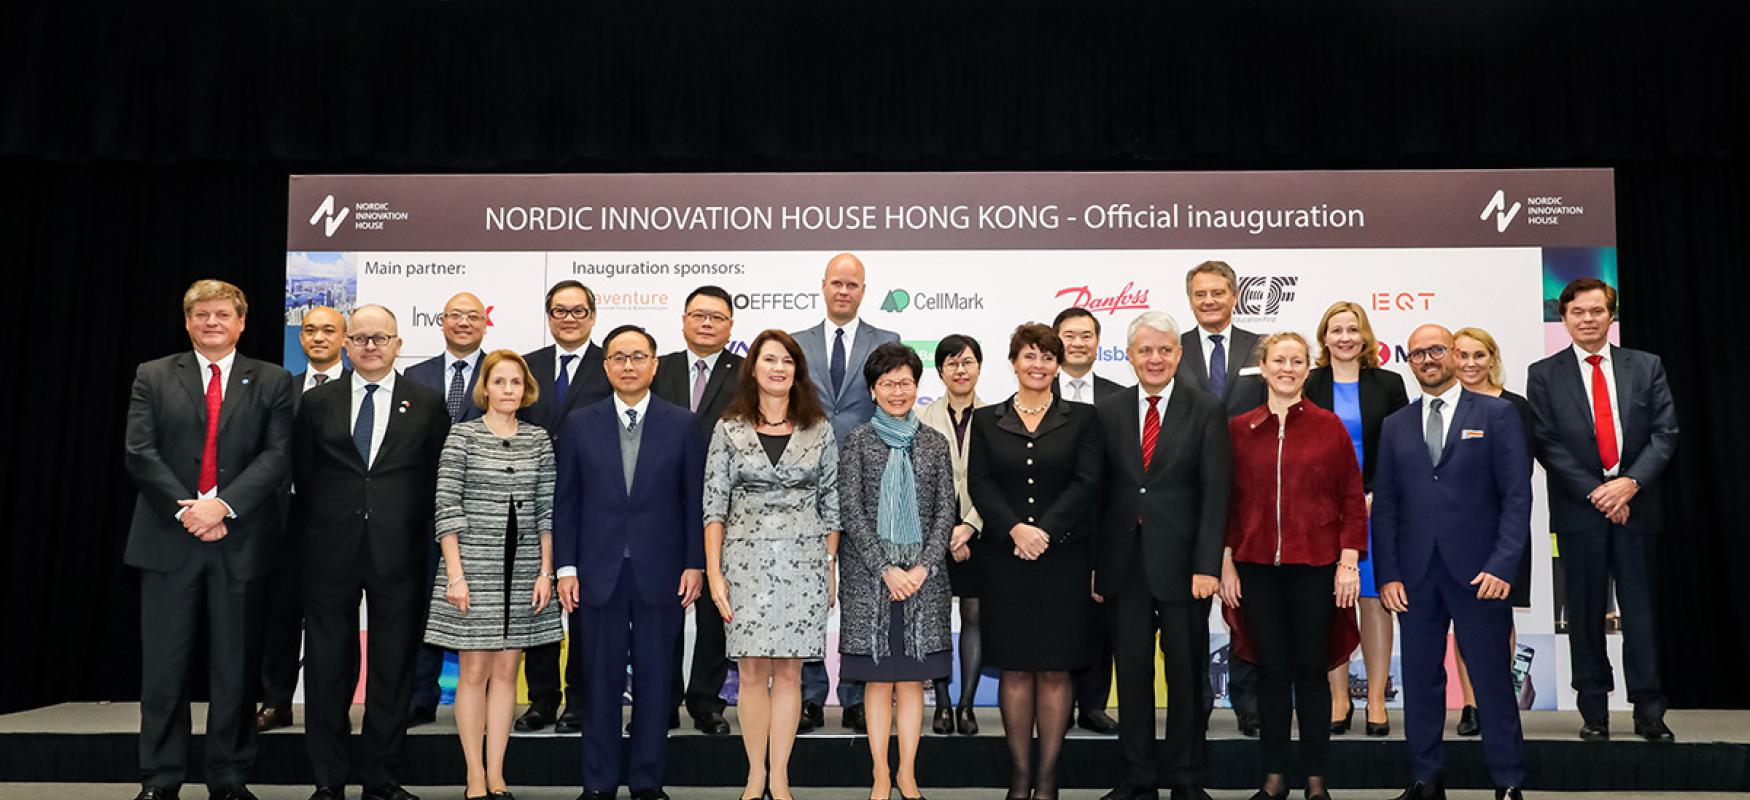 A crowd on-stage at the opening of Nordic Innovation House in Hong Kong.